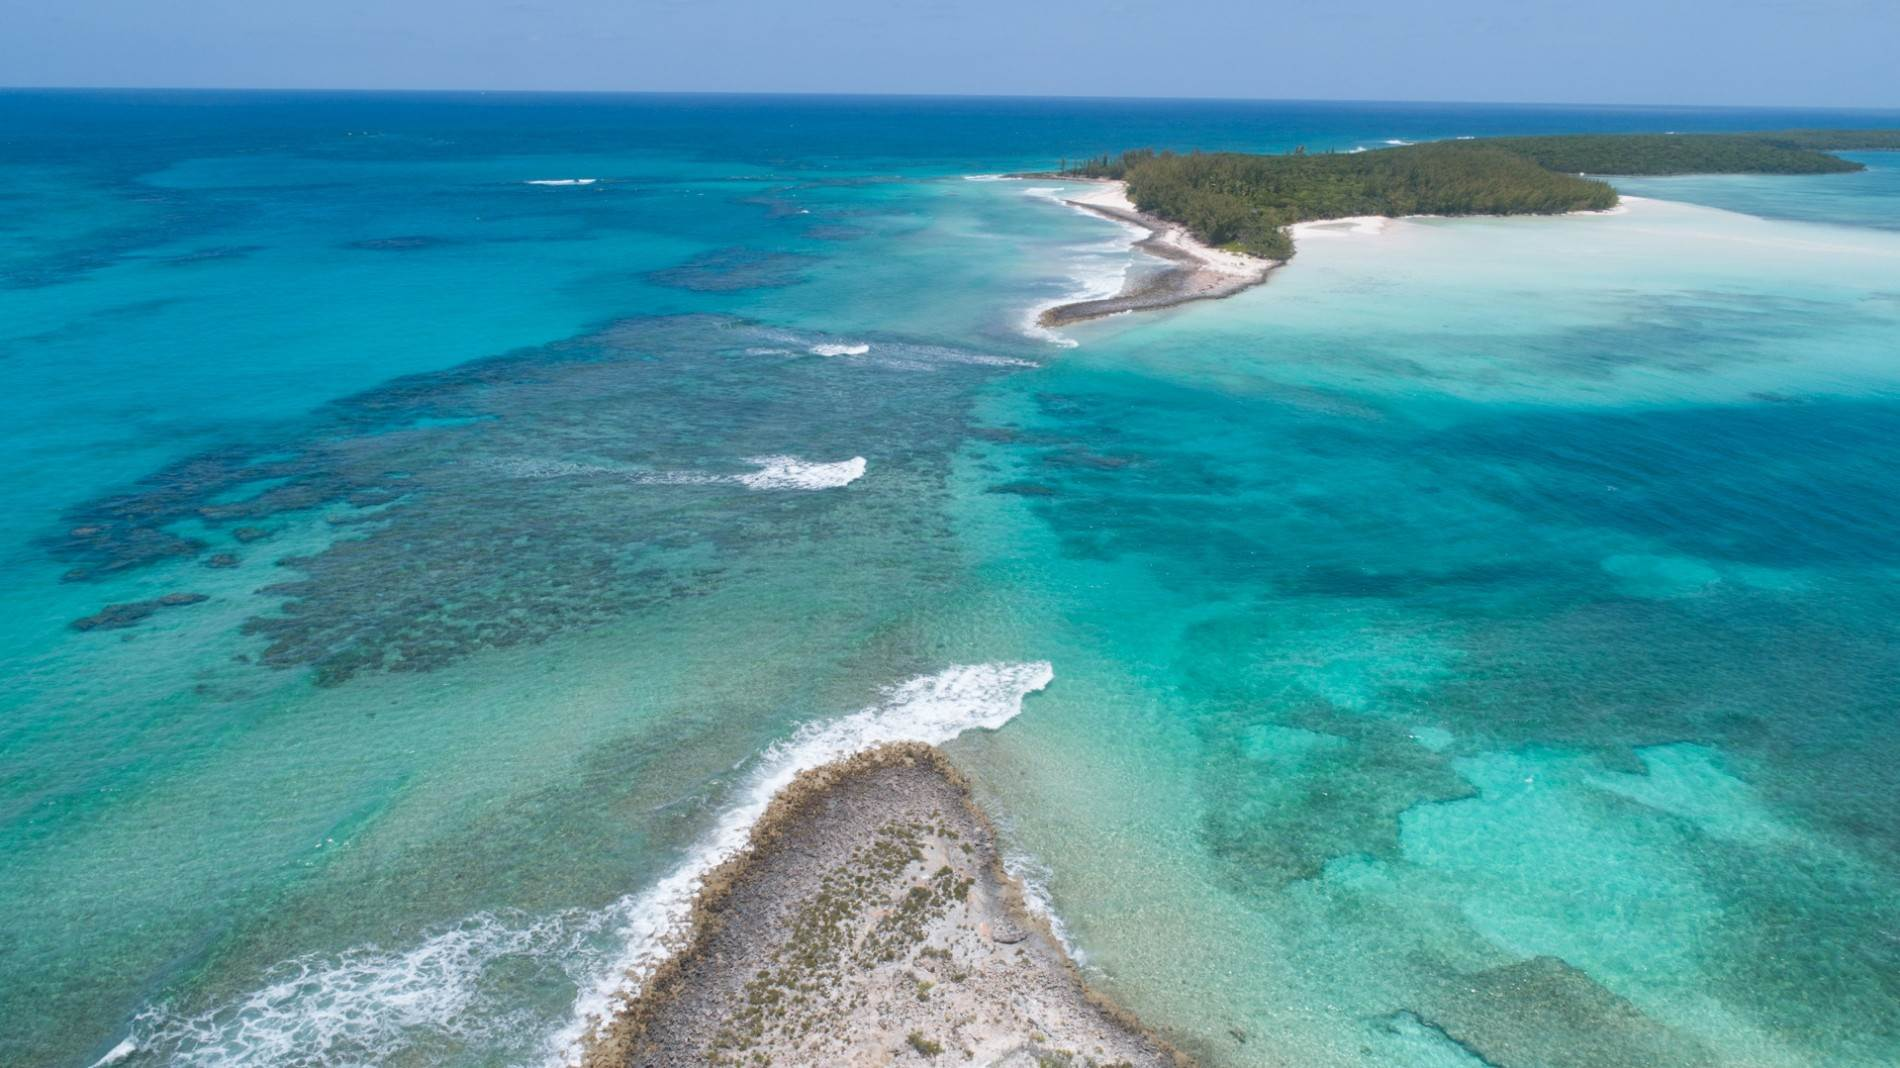 14. Private Islands for Sale at Pierre Island, A Perfect Private Retreat Island Near Harbour Island - MLS 40806 Harbour Island, Eleuthera, Bahamas